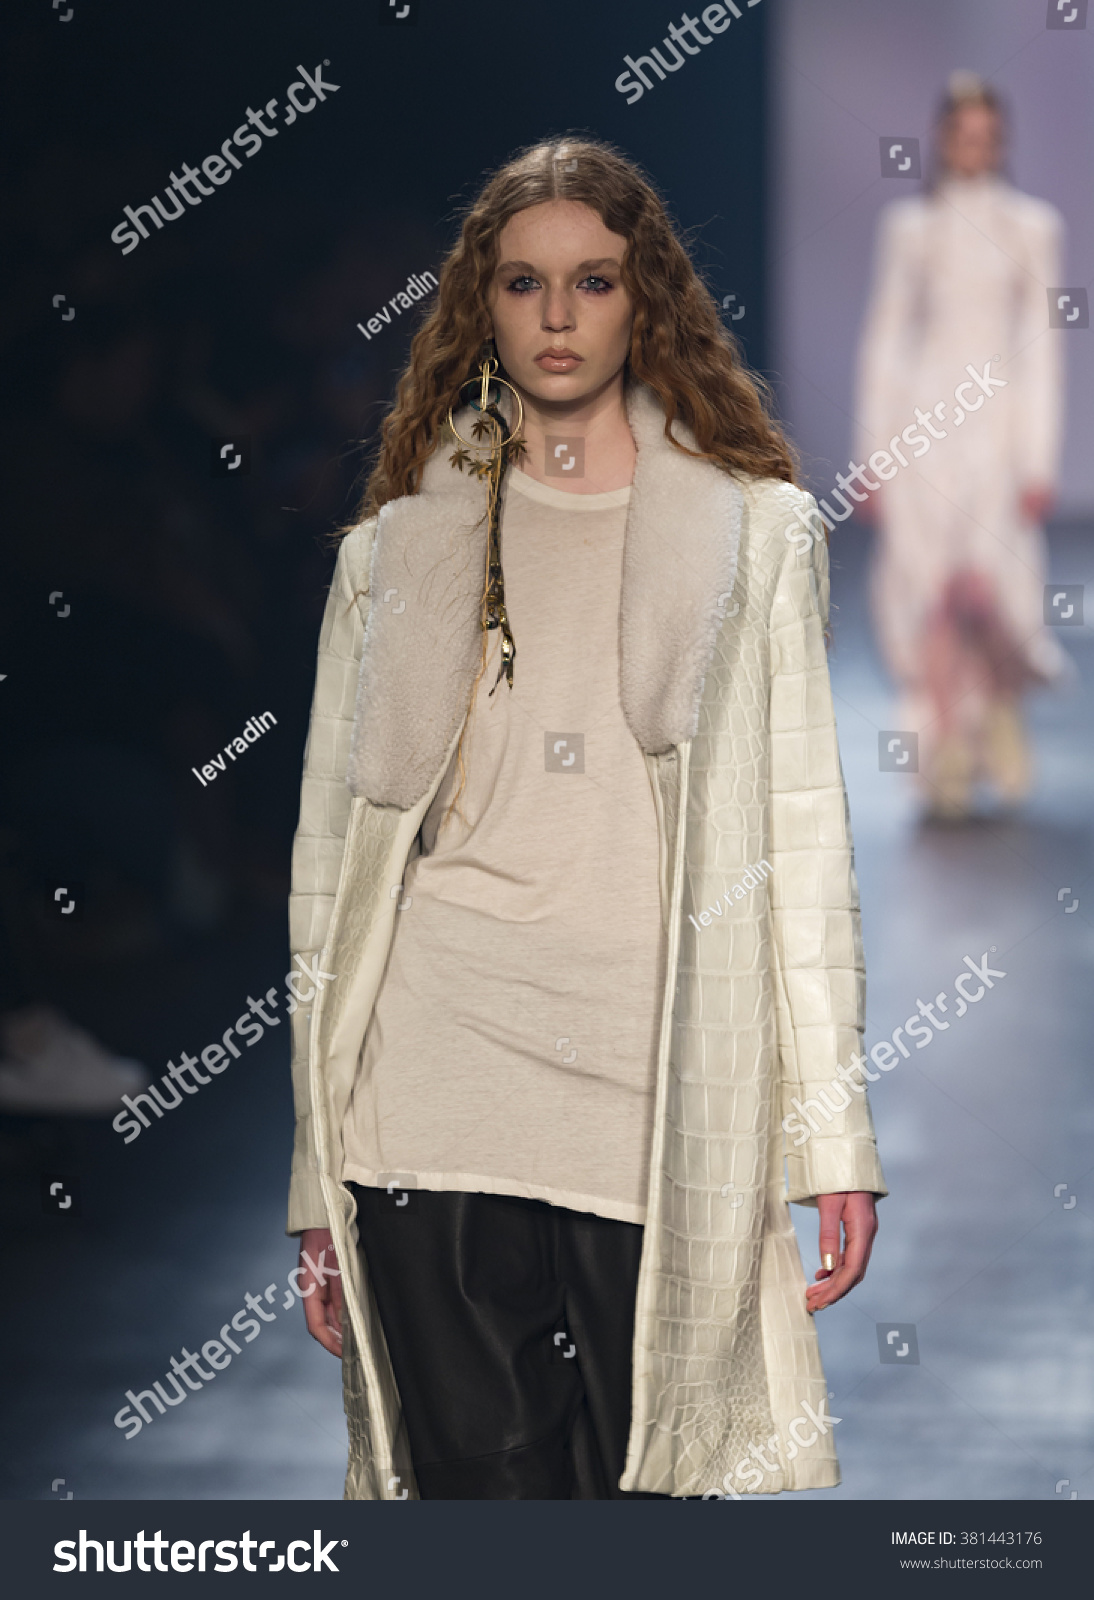 Webster Sophia spring collection pictures, Cavalli roberto spring